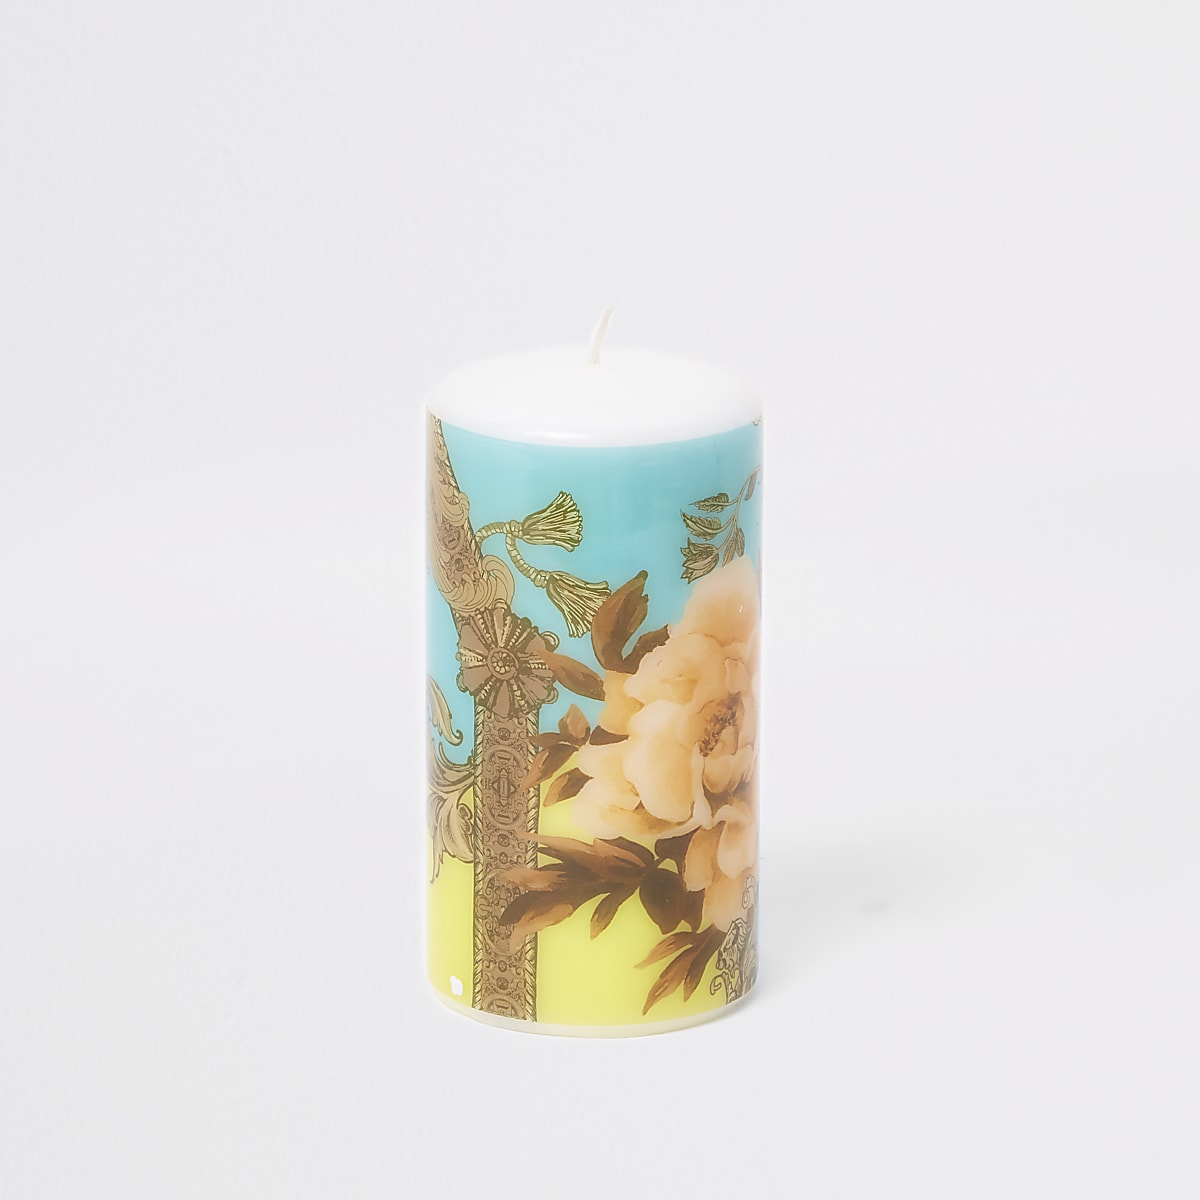 Turquoise pastel ornate printed candle